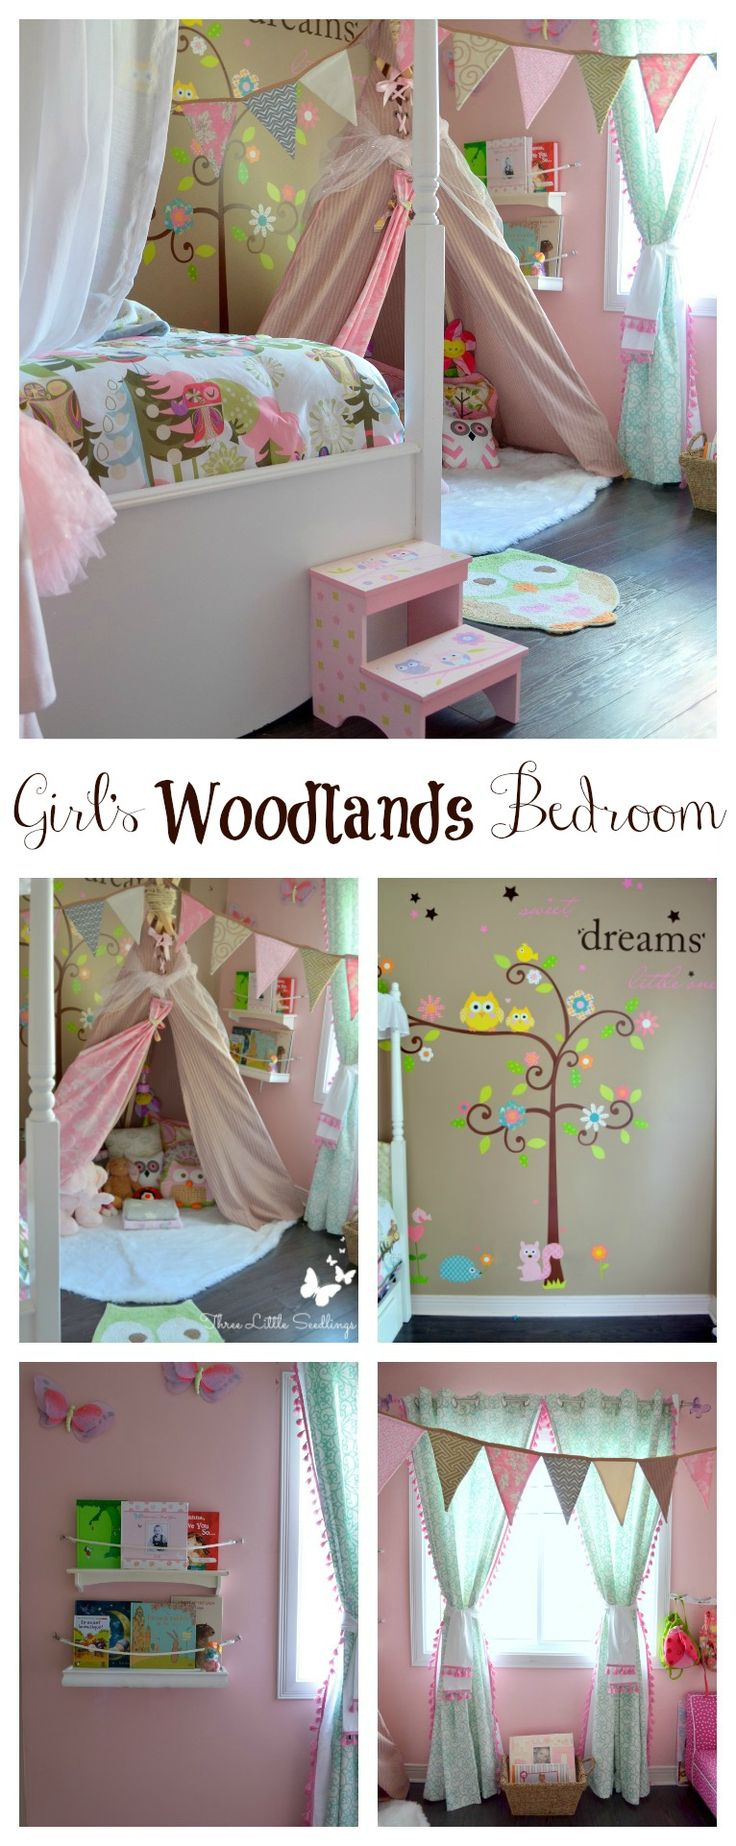 Amazing Looking For Ideas To Redecorate Your Little Girlu0027s Bedroom   Youu0027ll ❤ The  Woodlands